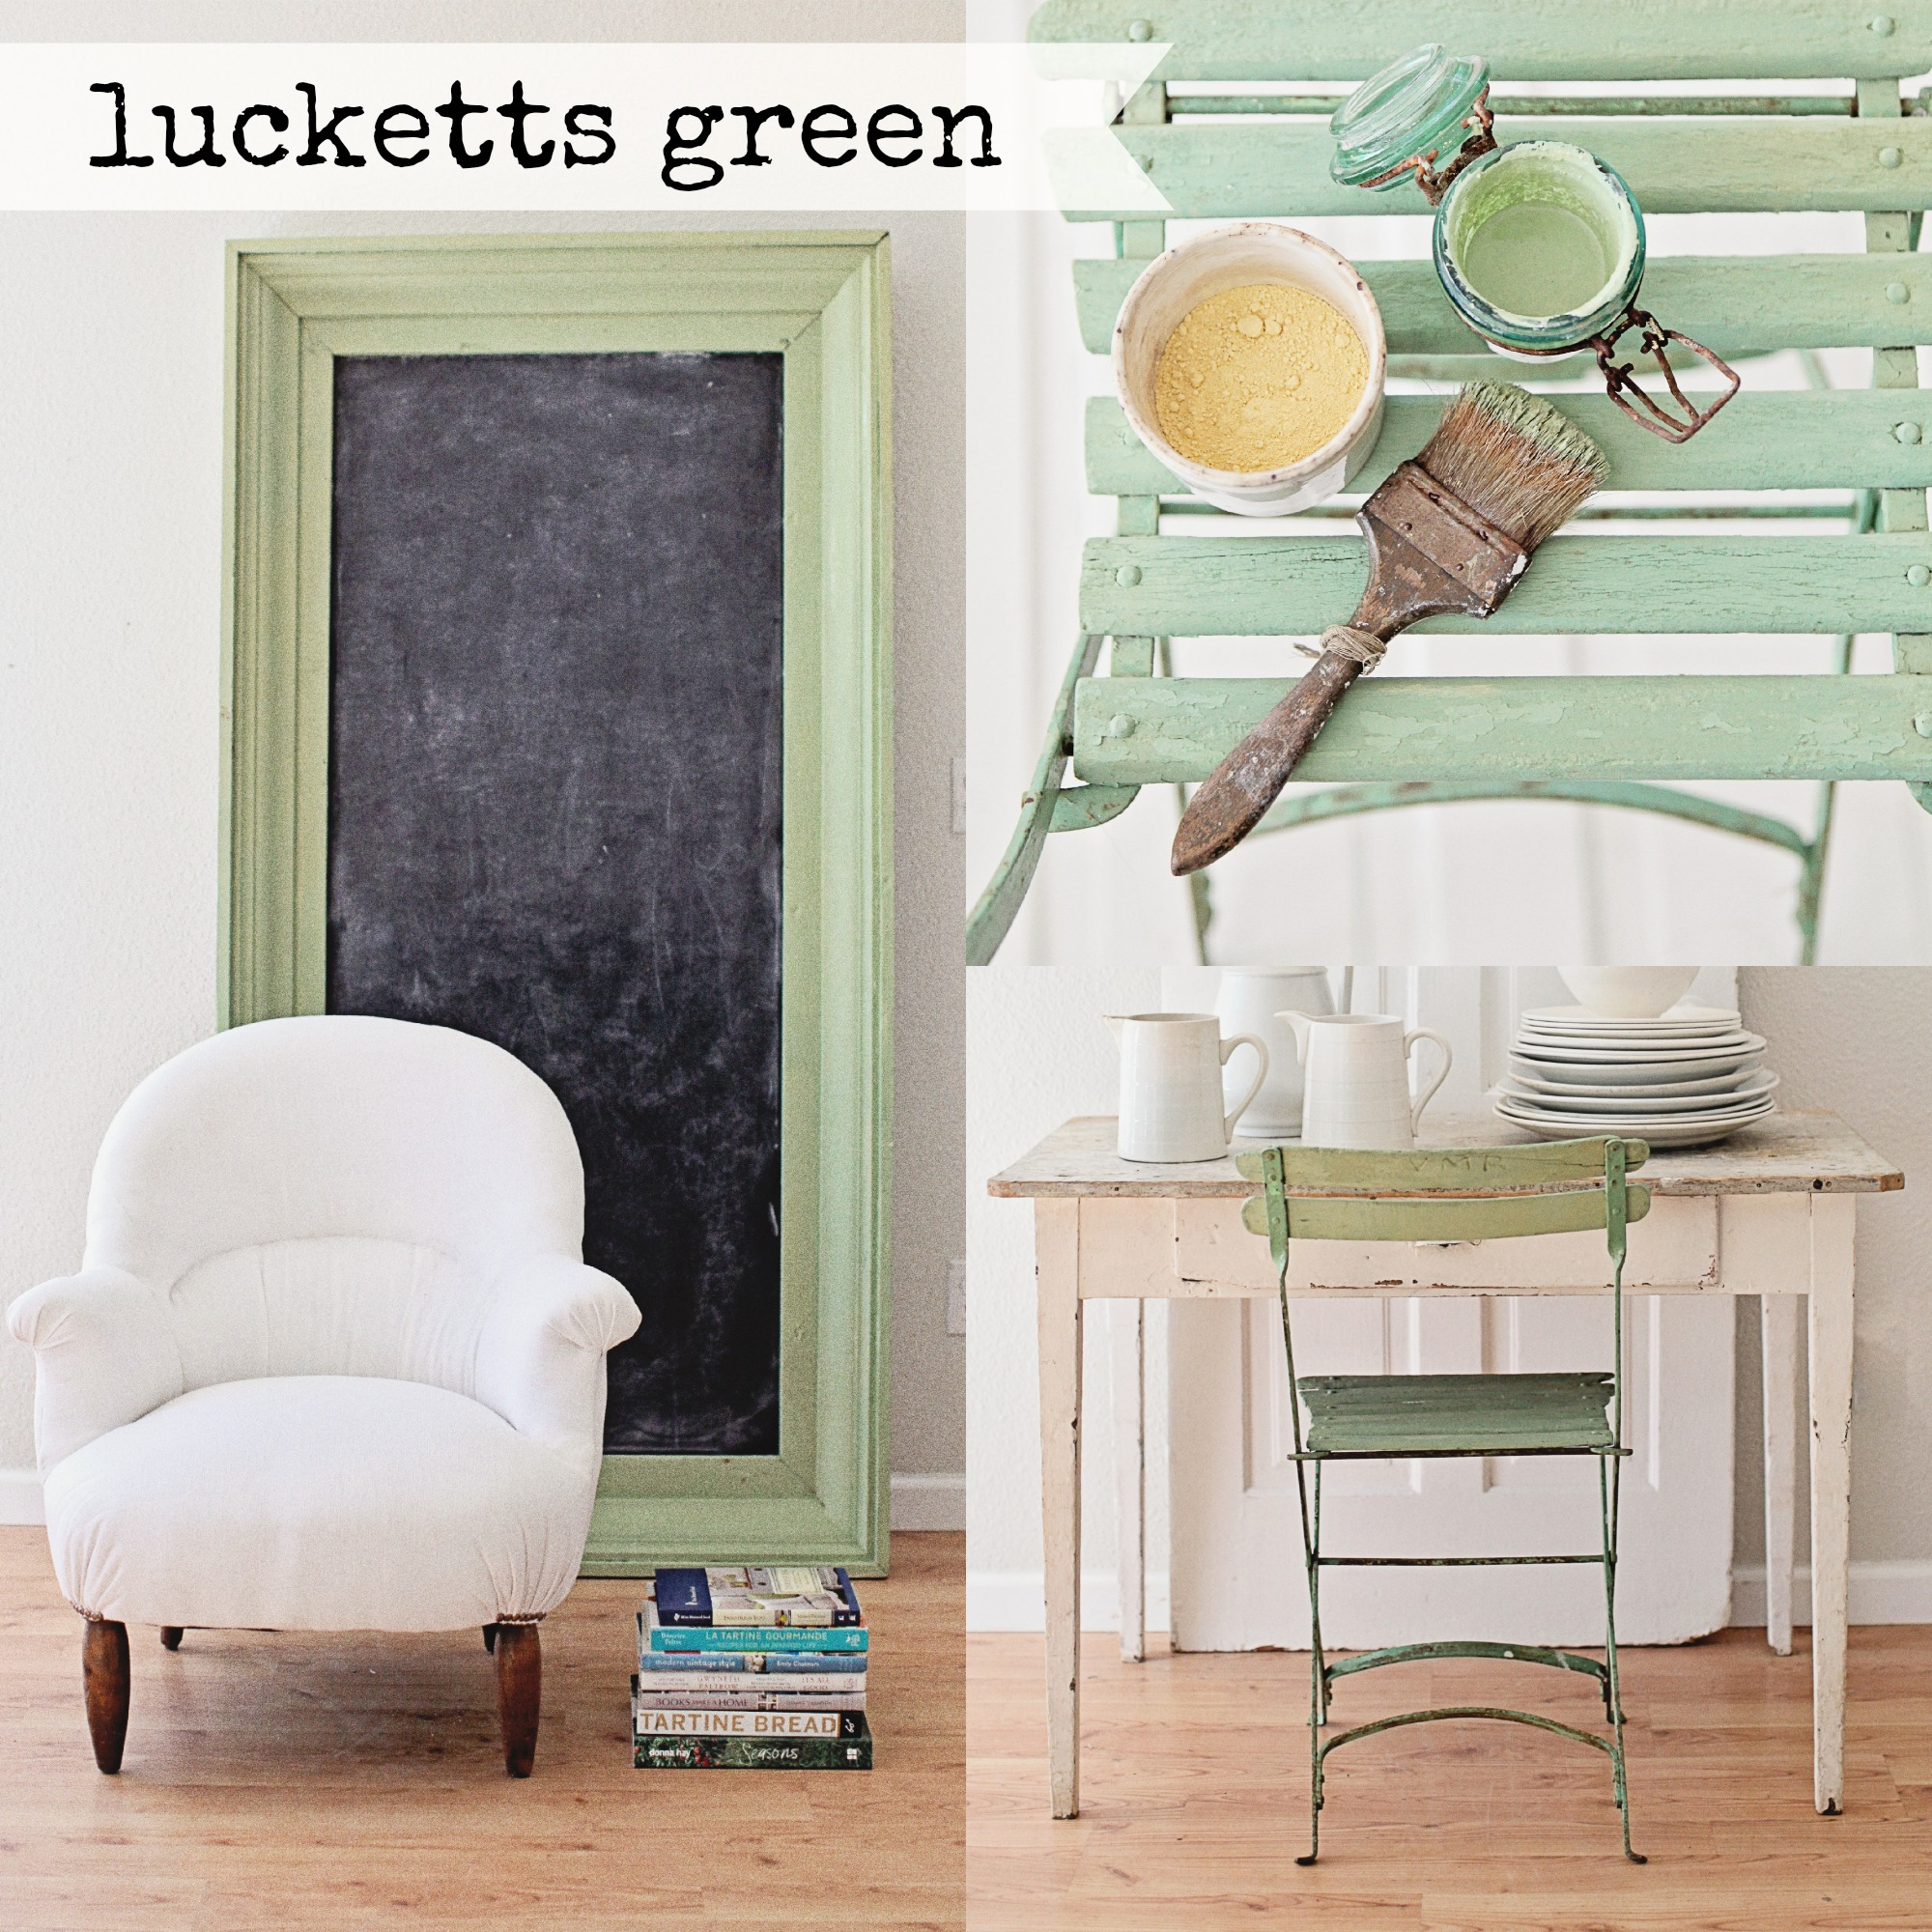 Lucketts-Green-Collage